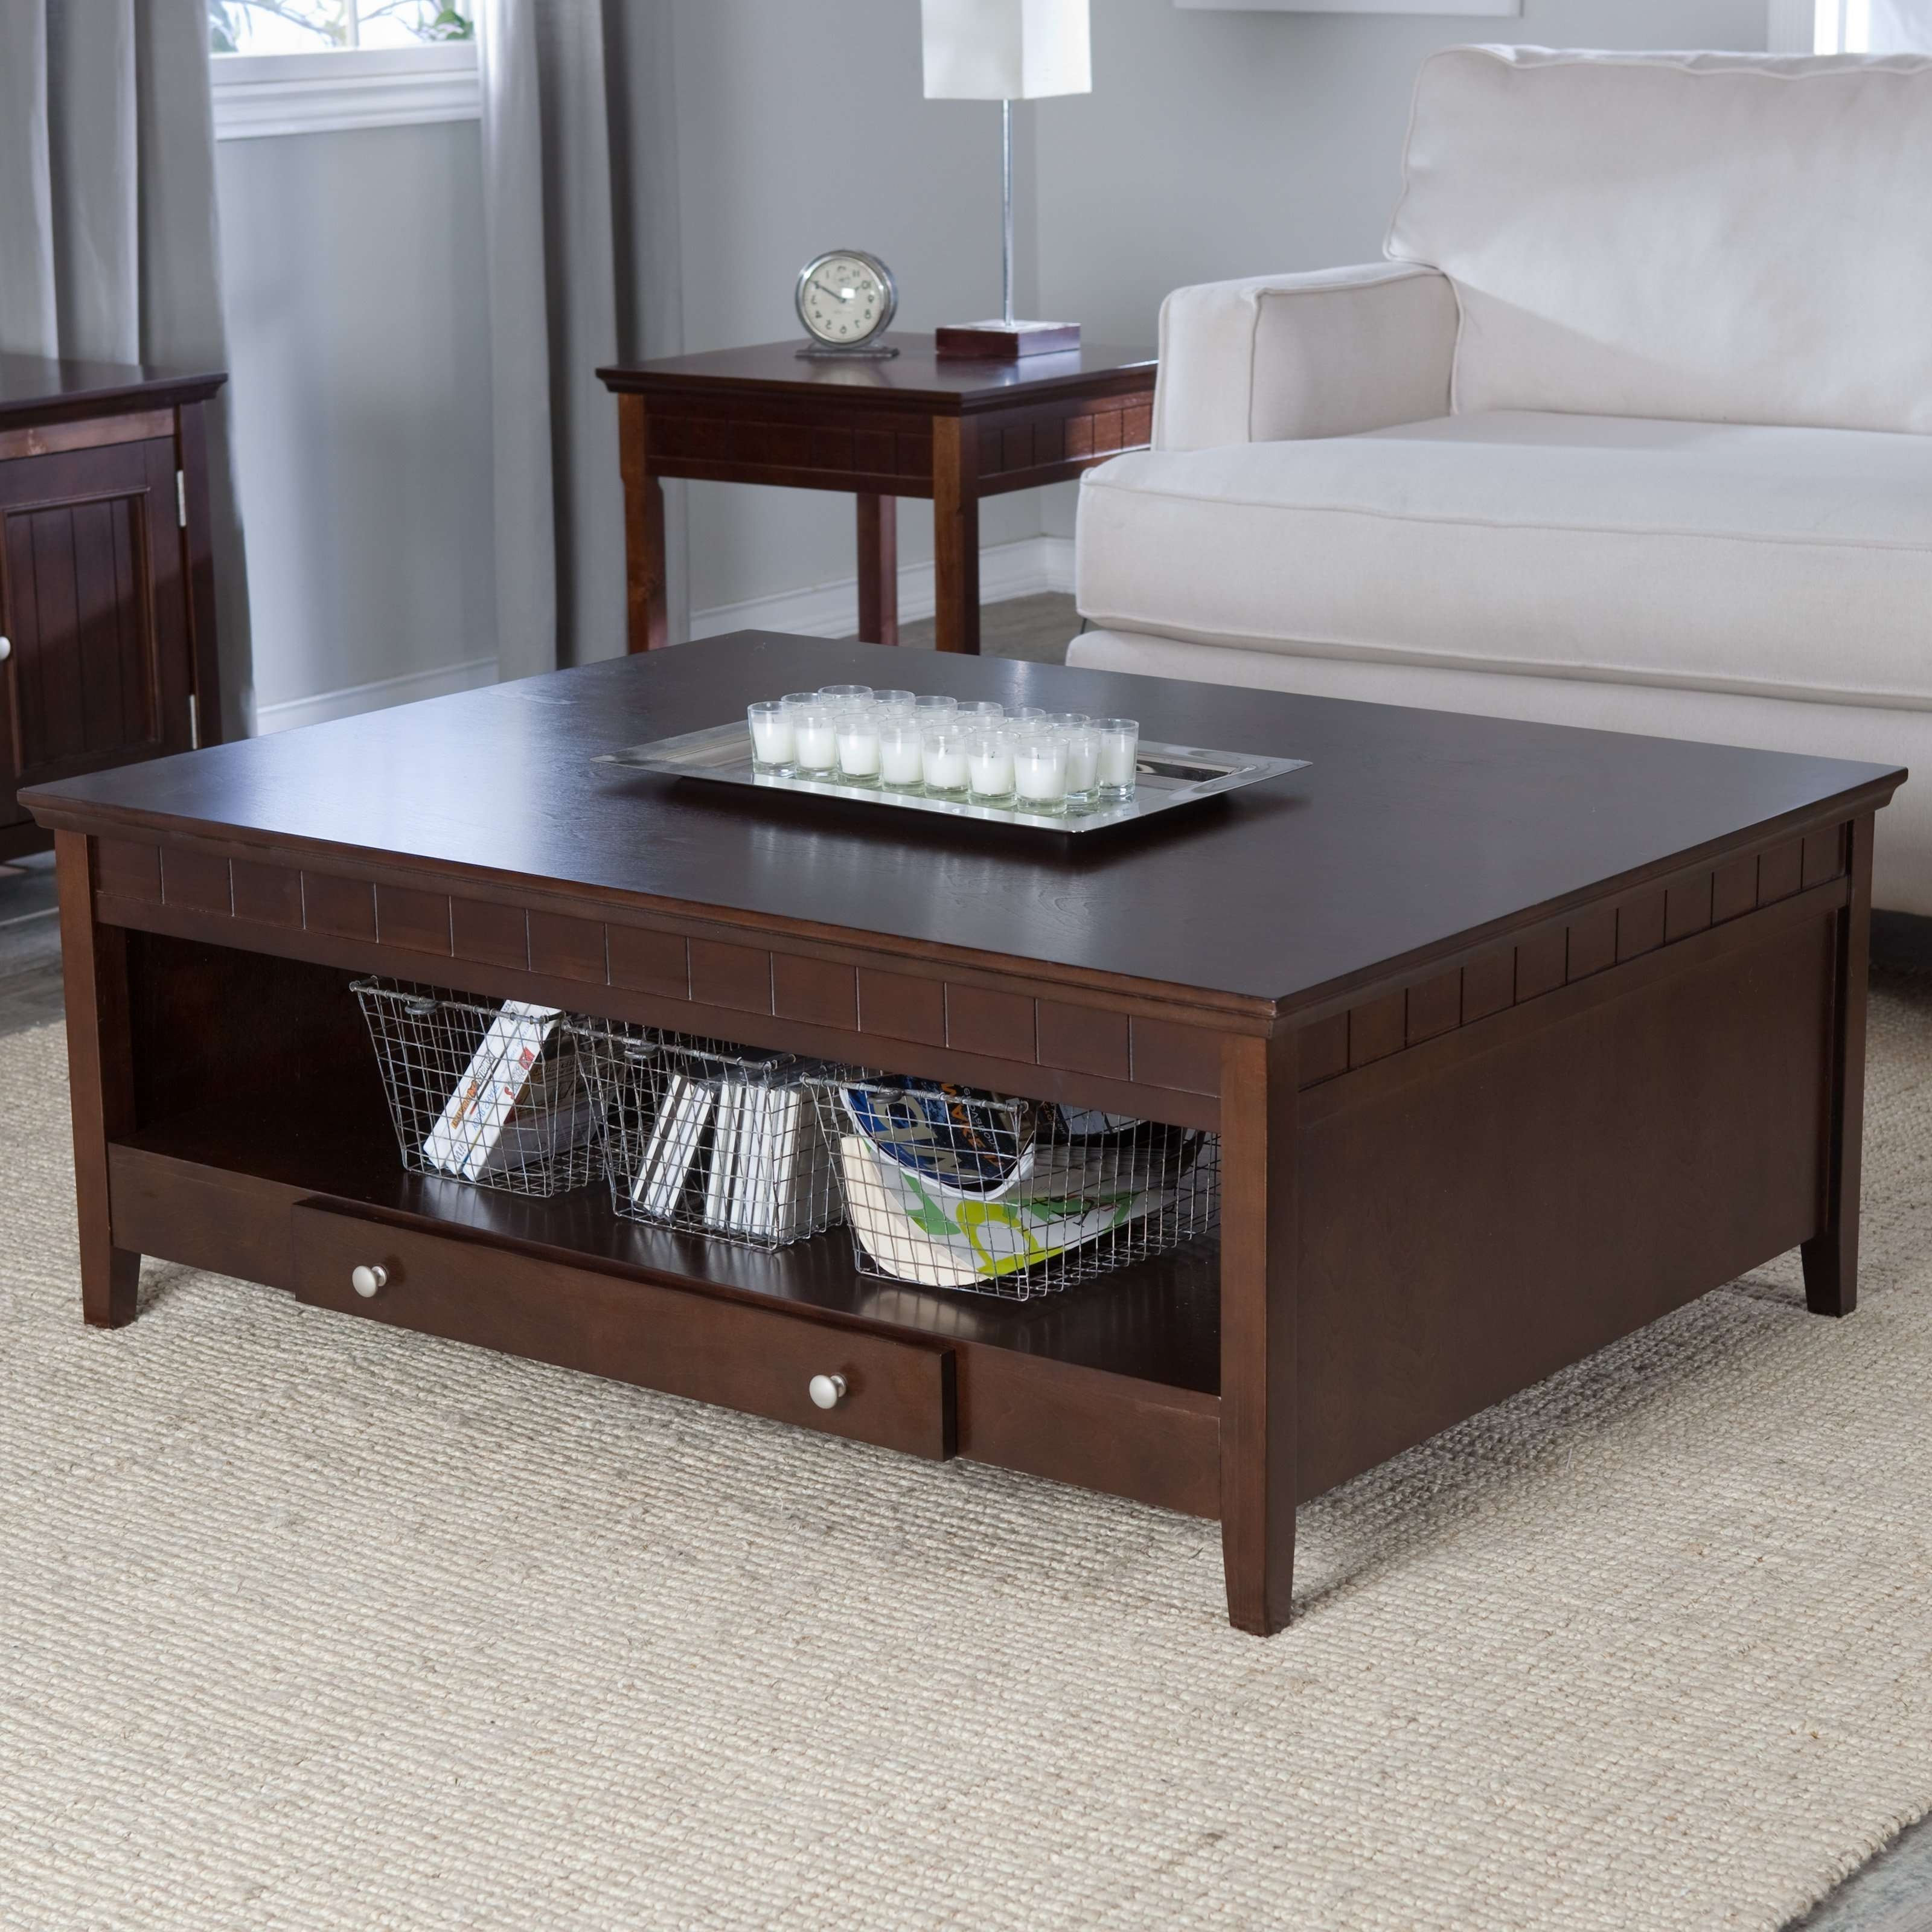 Preferred Coffee Tables With Basket Storage Underneath Regarding Furniture (View 20 of 20)